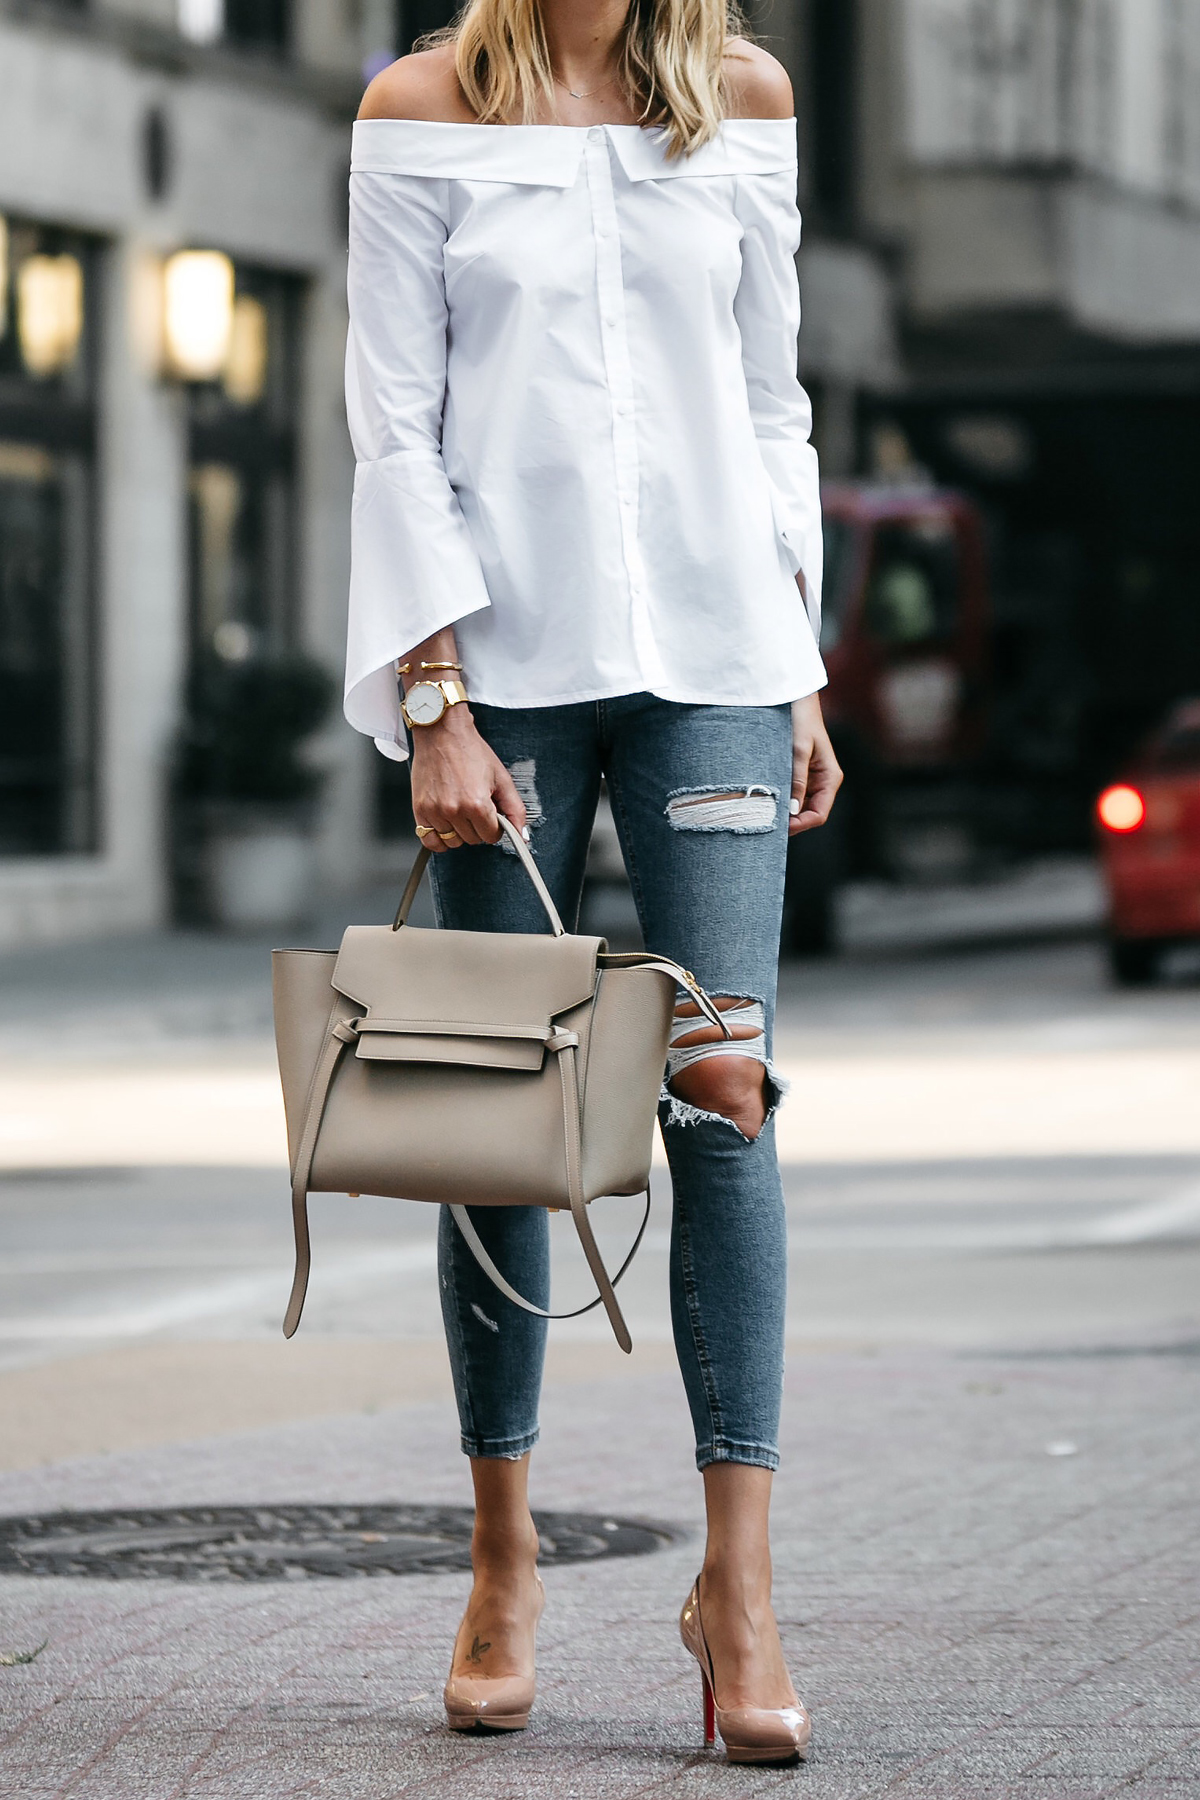 Nordstrom Anniversary Sale White Bell-Sleeve off-the-shoulder Top Topshop Denim Ripped Skinny Jeans Outfit Christian Louboutin Nude Pumps Celine Belt Bag Fashion Jackson Dallas Blogger Fashion Blogger Street Style